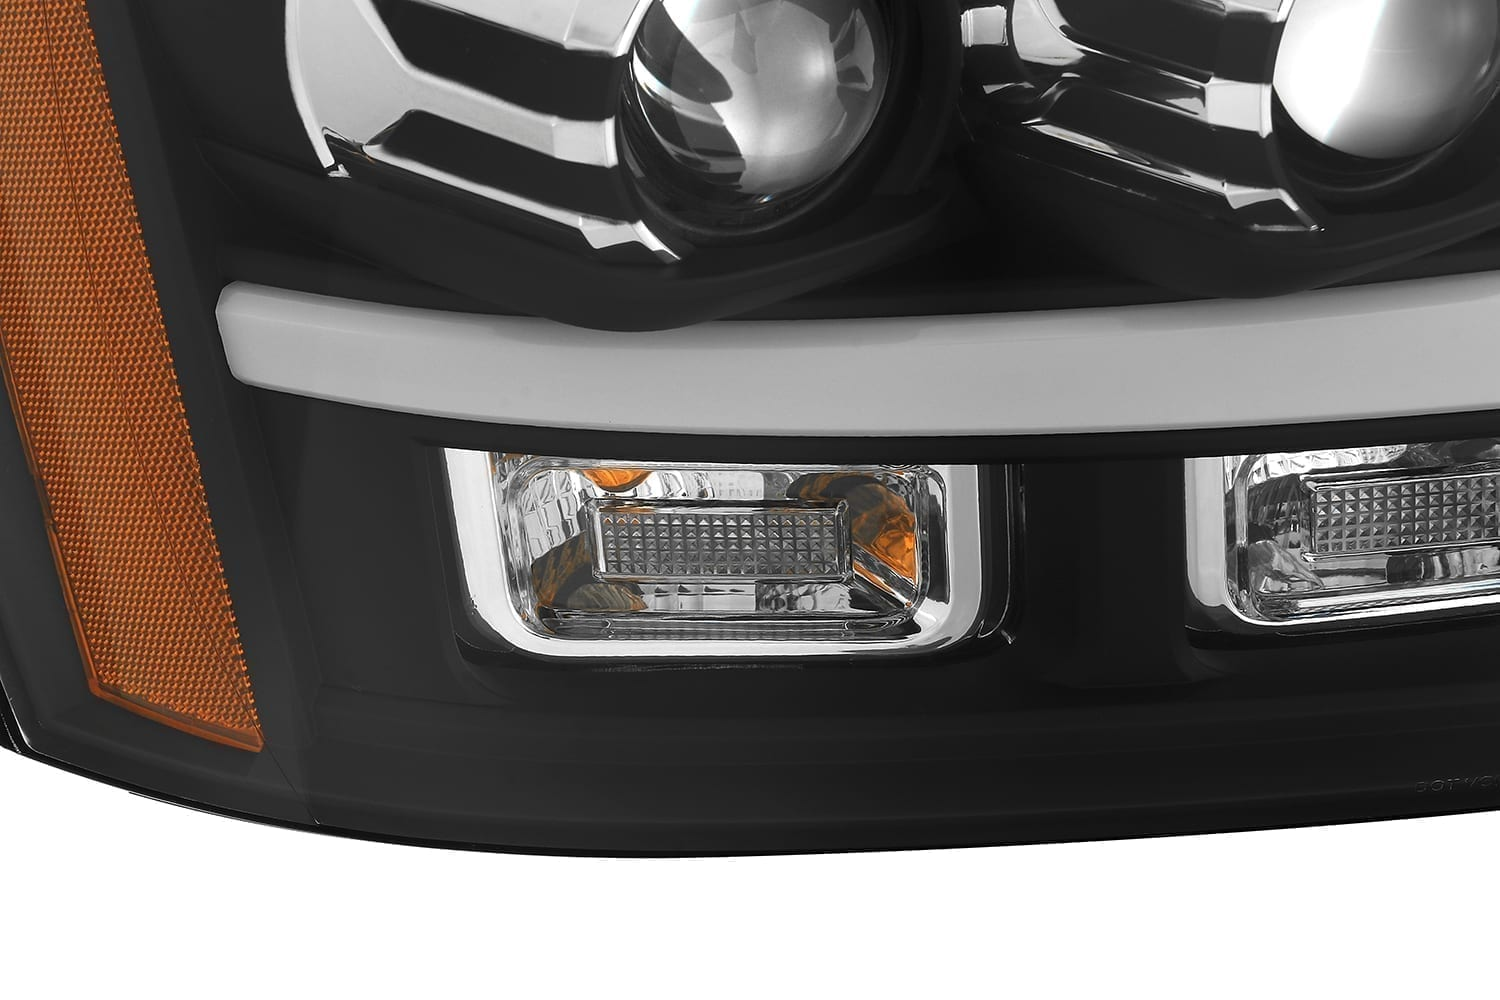 AlphaRex 2007 2008 2009 2010 2011 2012 2013 2014 Chevy Tahoe Suburban Avalanche PRO-Series Projector Headlights Black